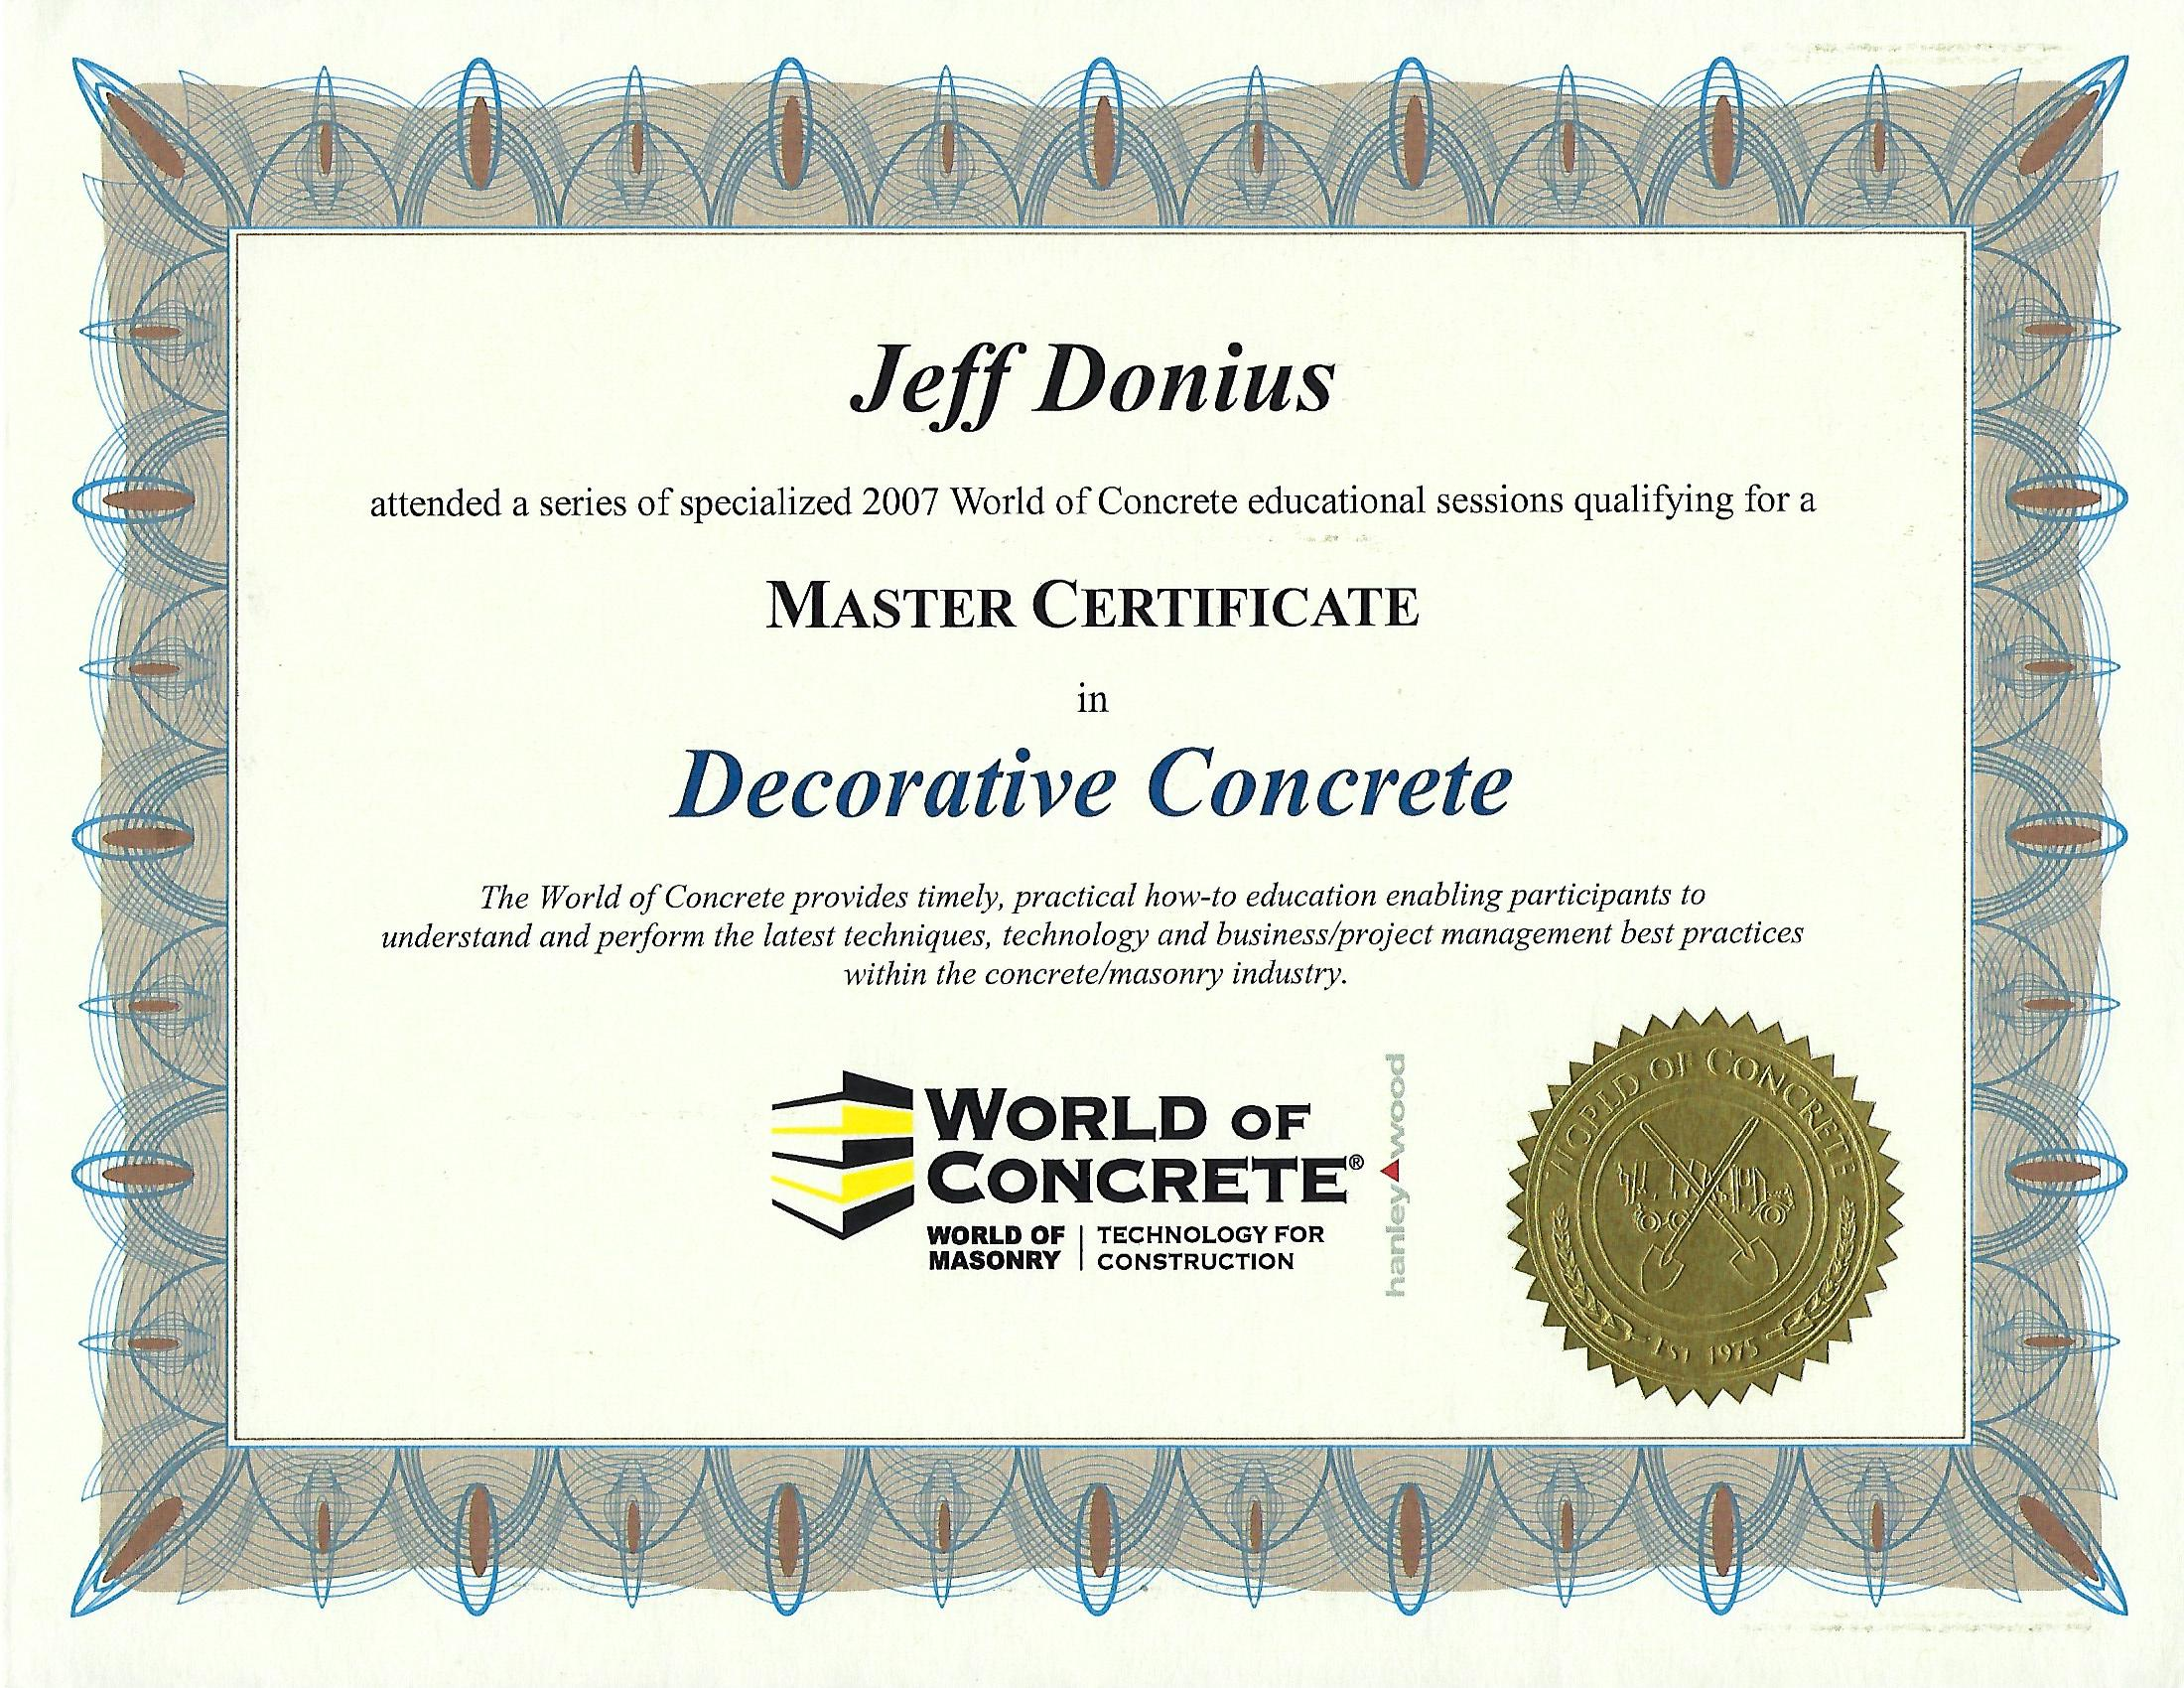 Master Certificate in Decorative Concrete From 2007 World Of Concrete (WOC)